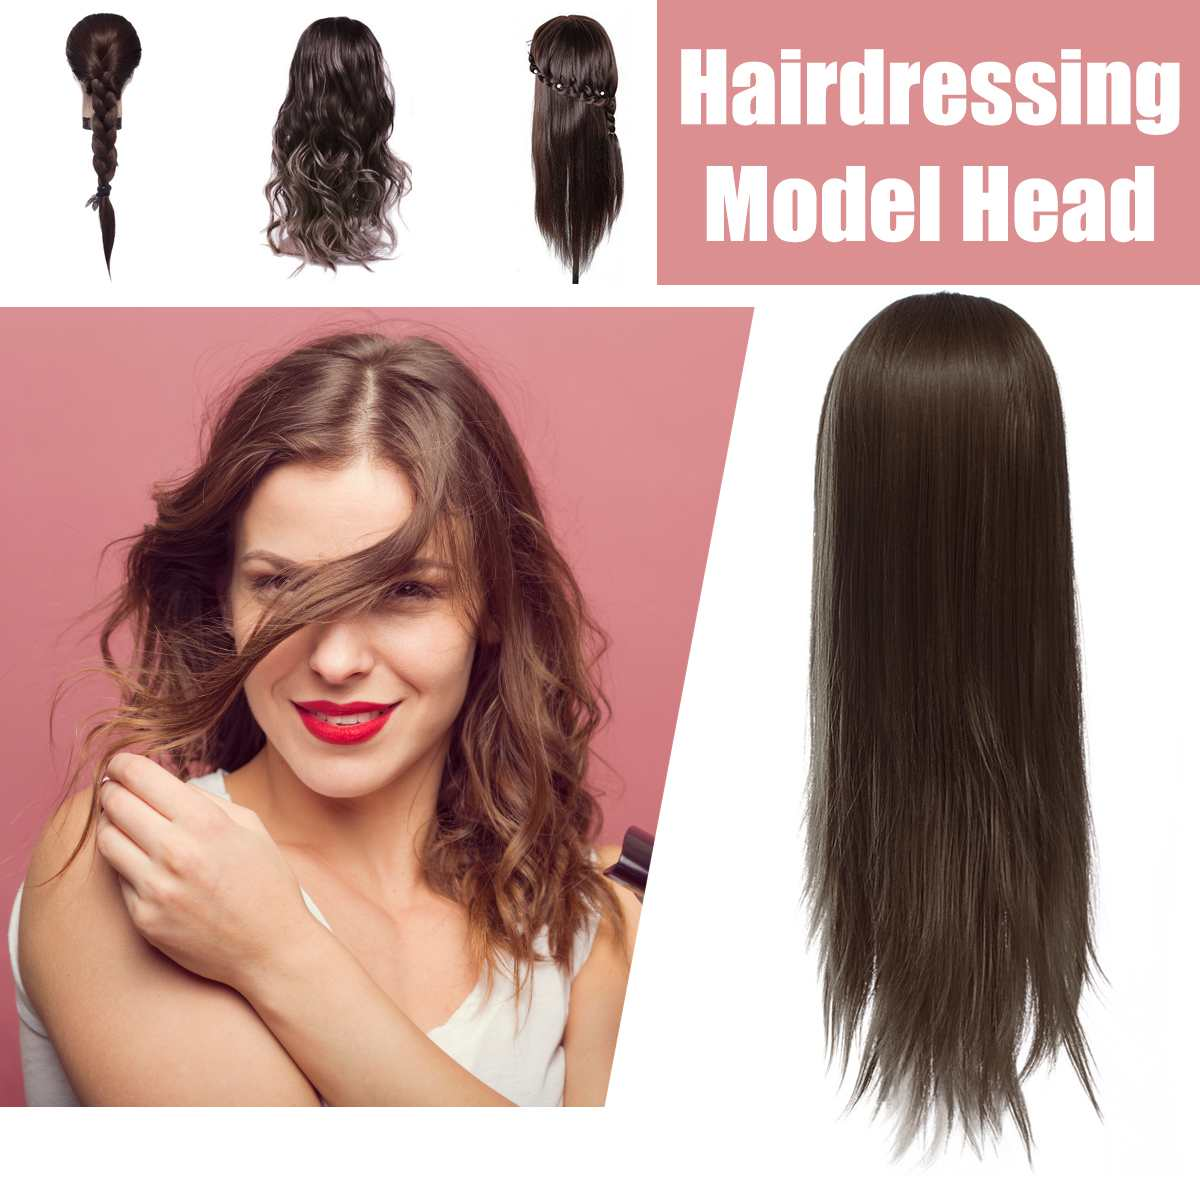 Professional Long Hair Hairdressing Training Practice Mannequin Practice Head Salon Women Hairdresser Styling Head Mold Training